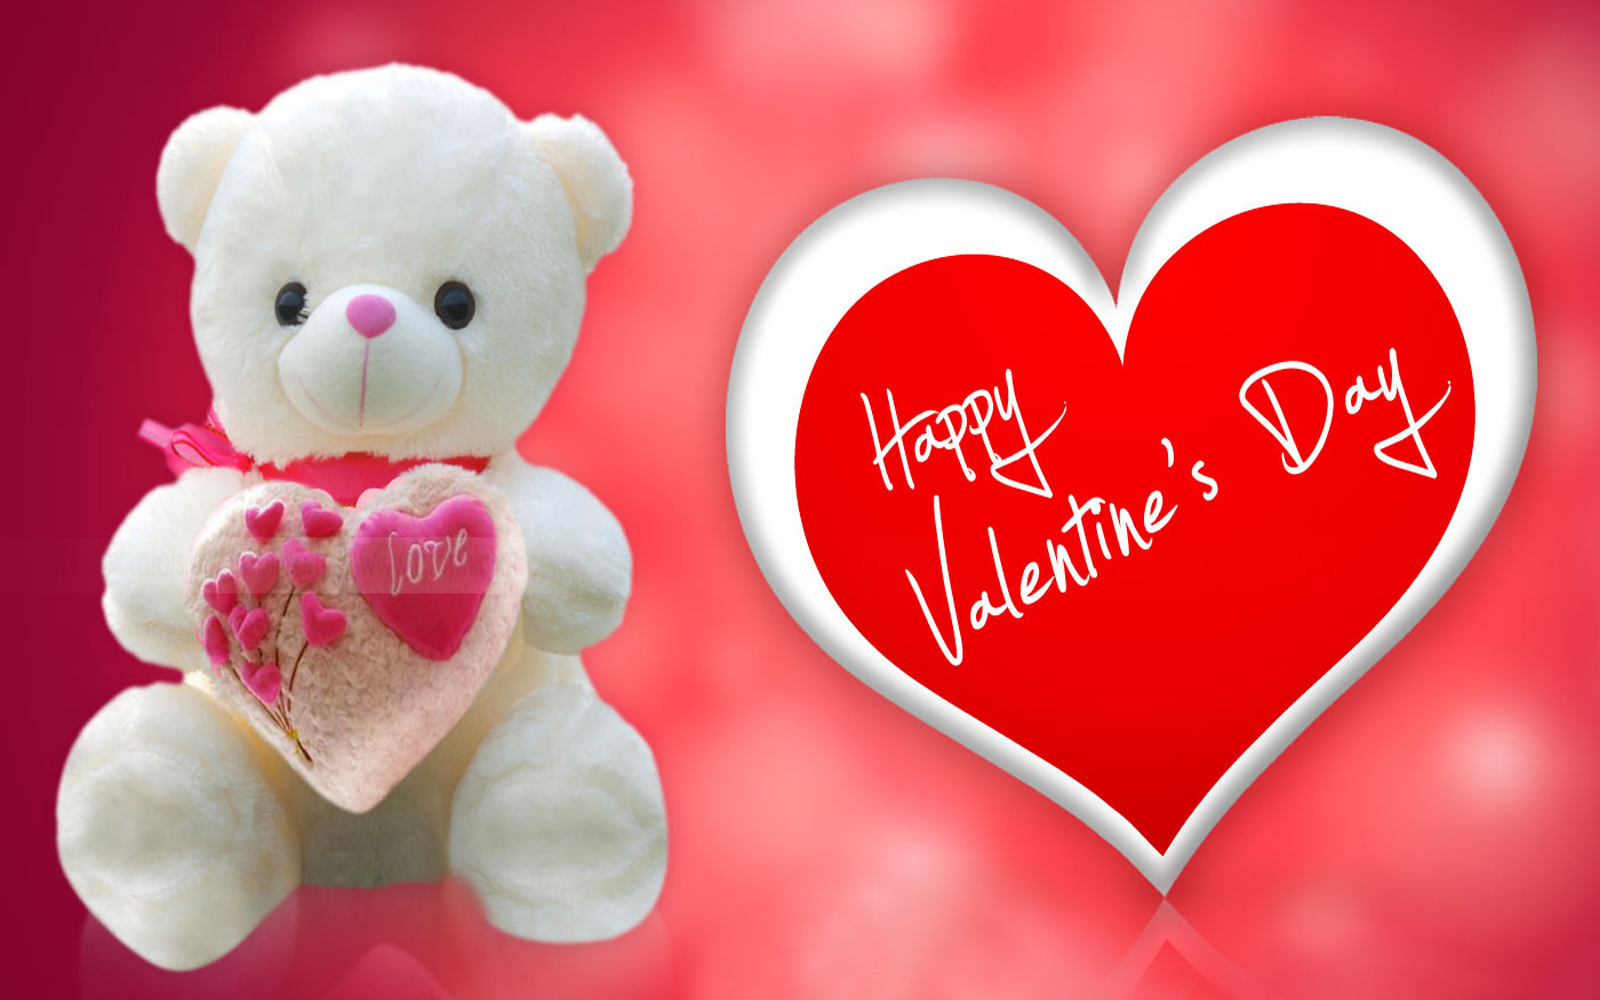 Happy valentine day wallpaper hd